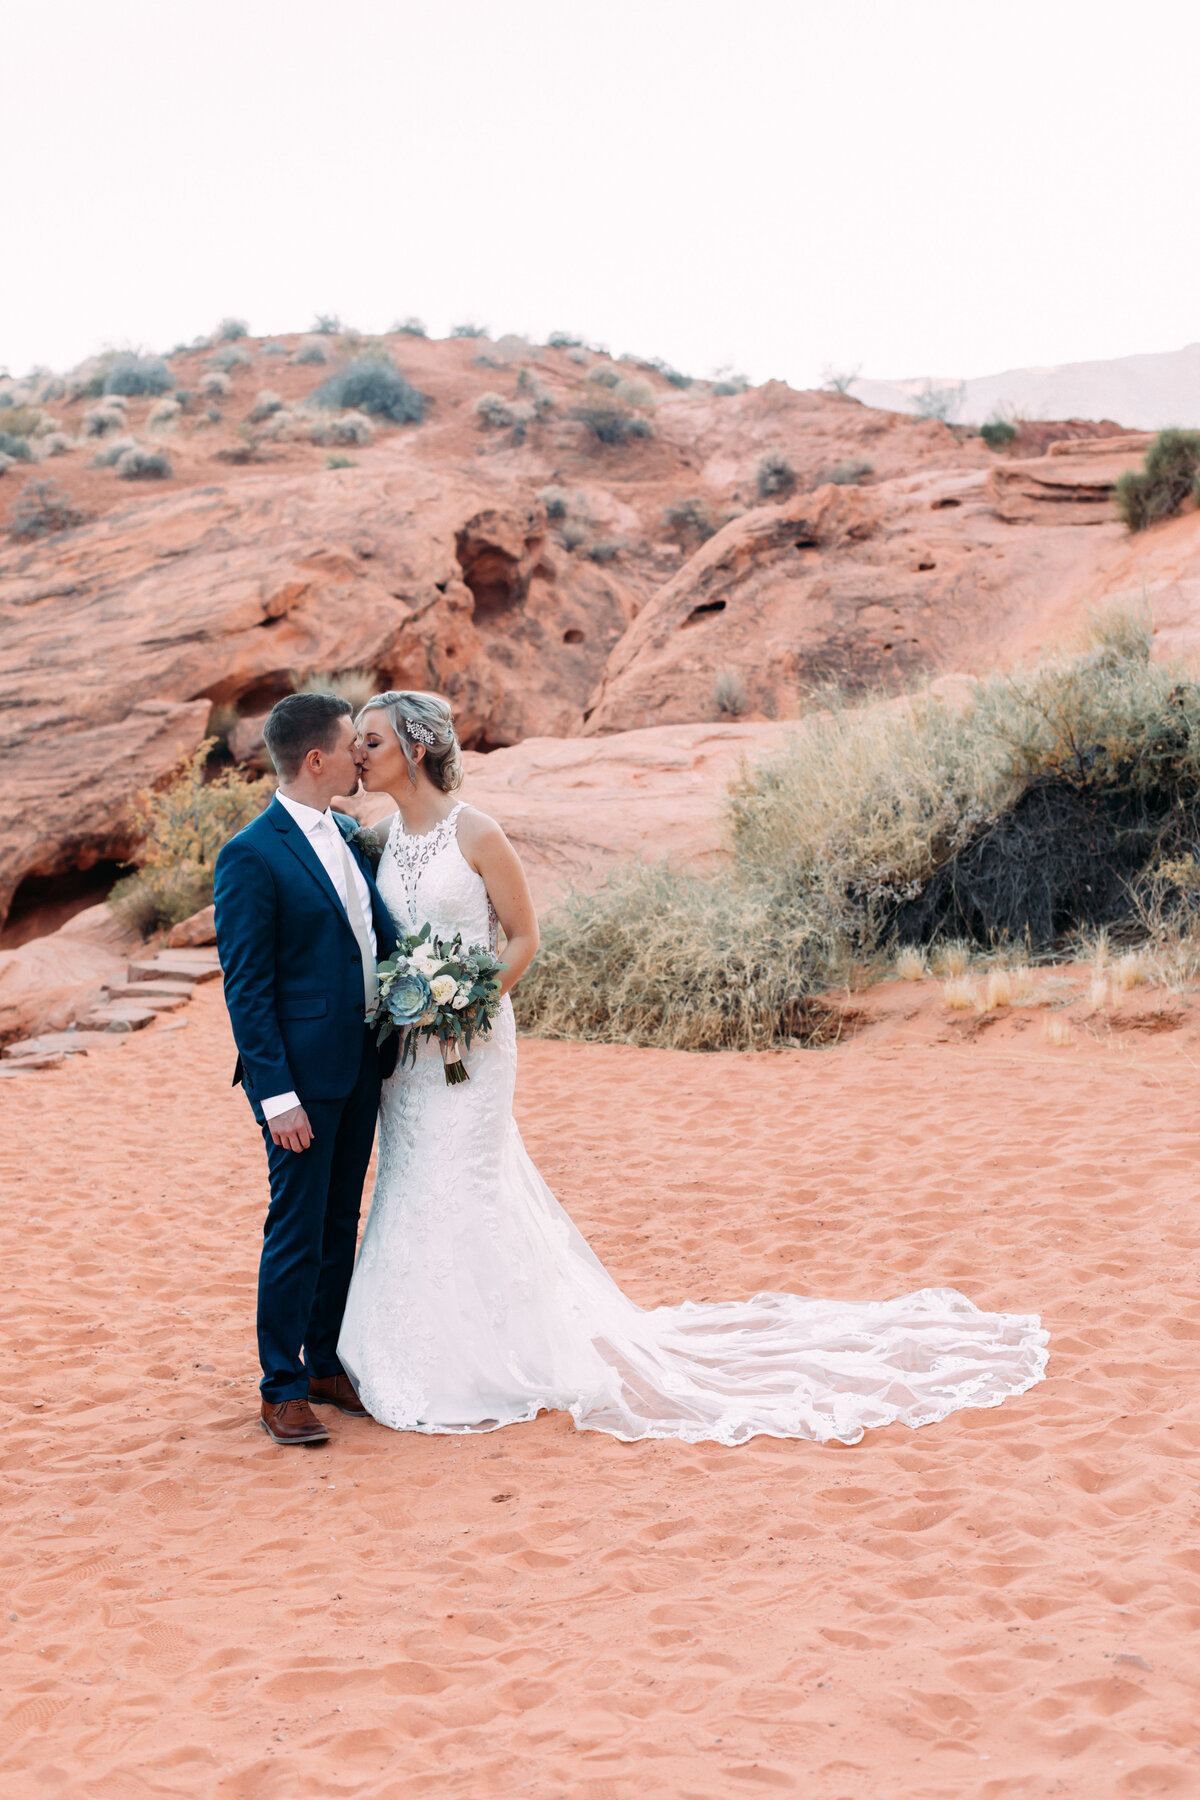 Heather+Ivan|AshlynSavannahPhoto|ValleyofFireElopement-32